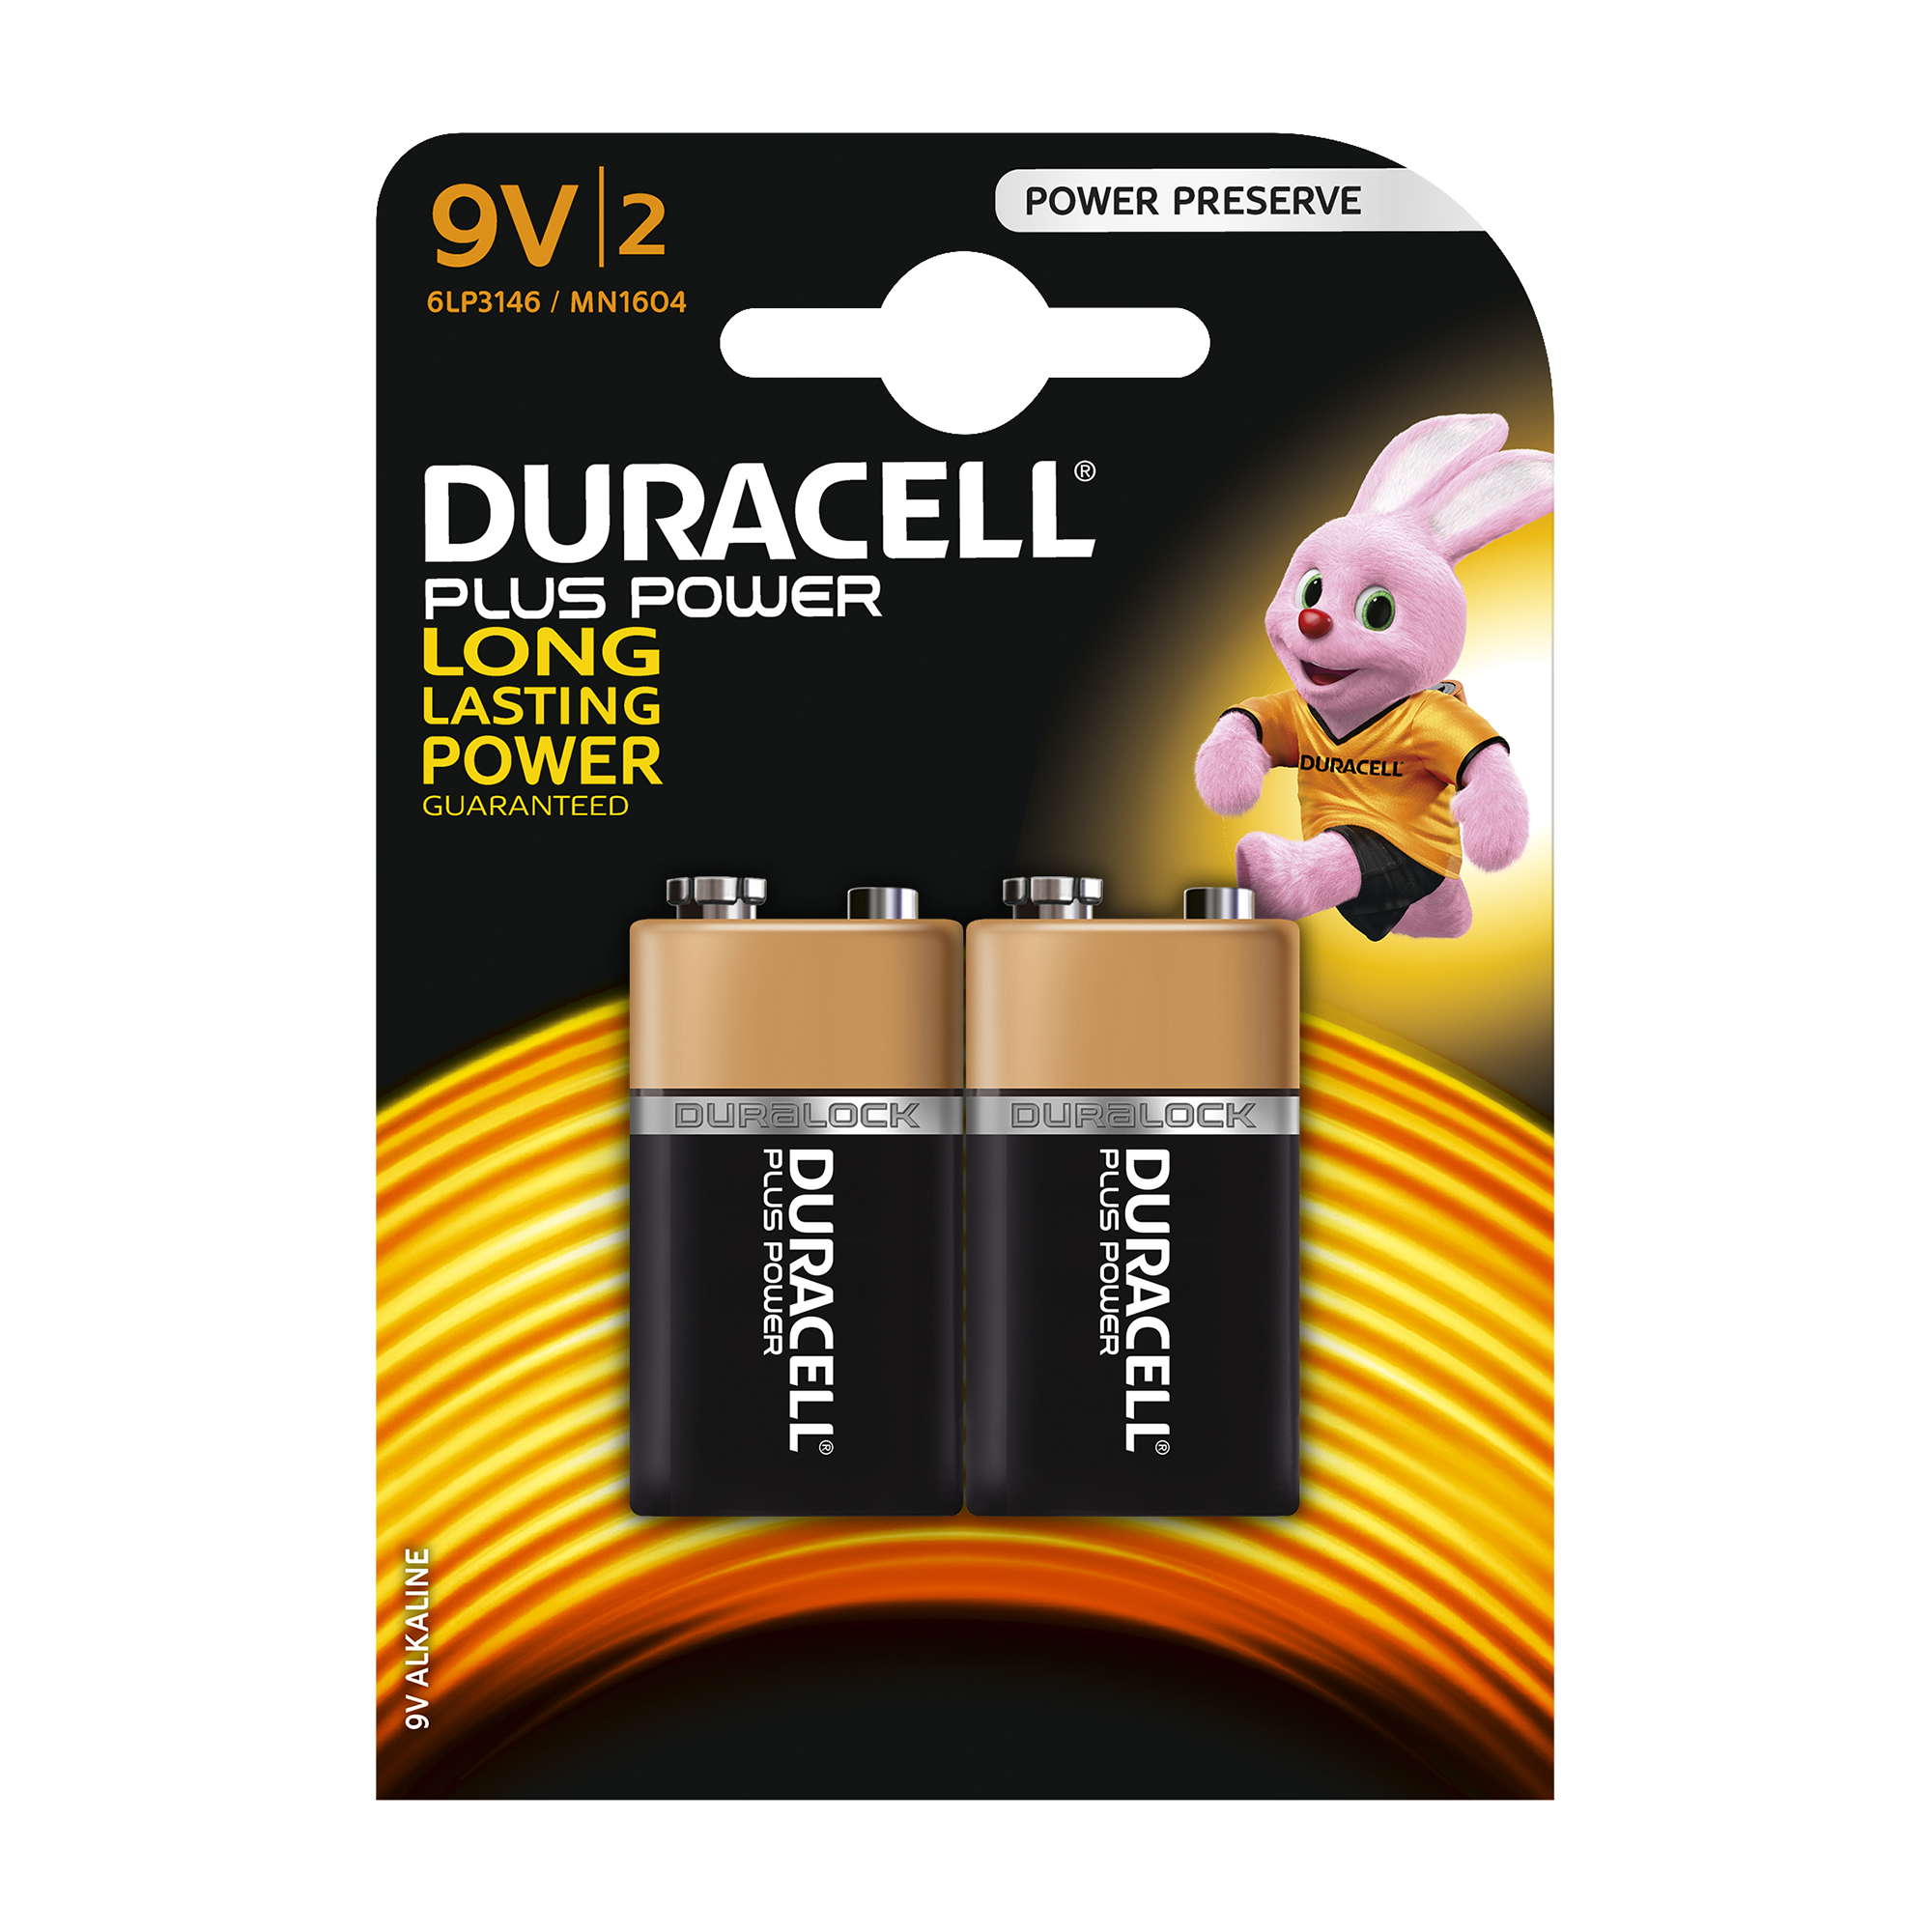 9V Duracell Plus Power MN1604 Battery Alkaline 9V Ref 81275459 Pack 2